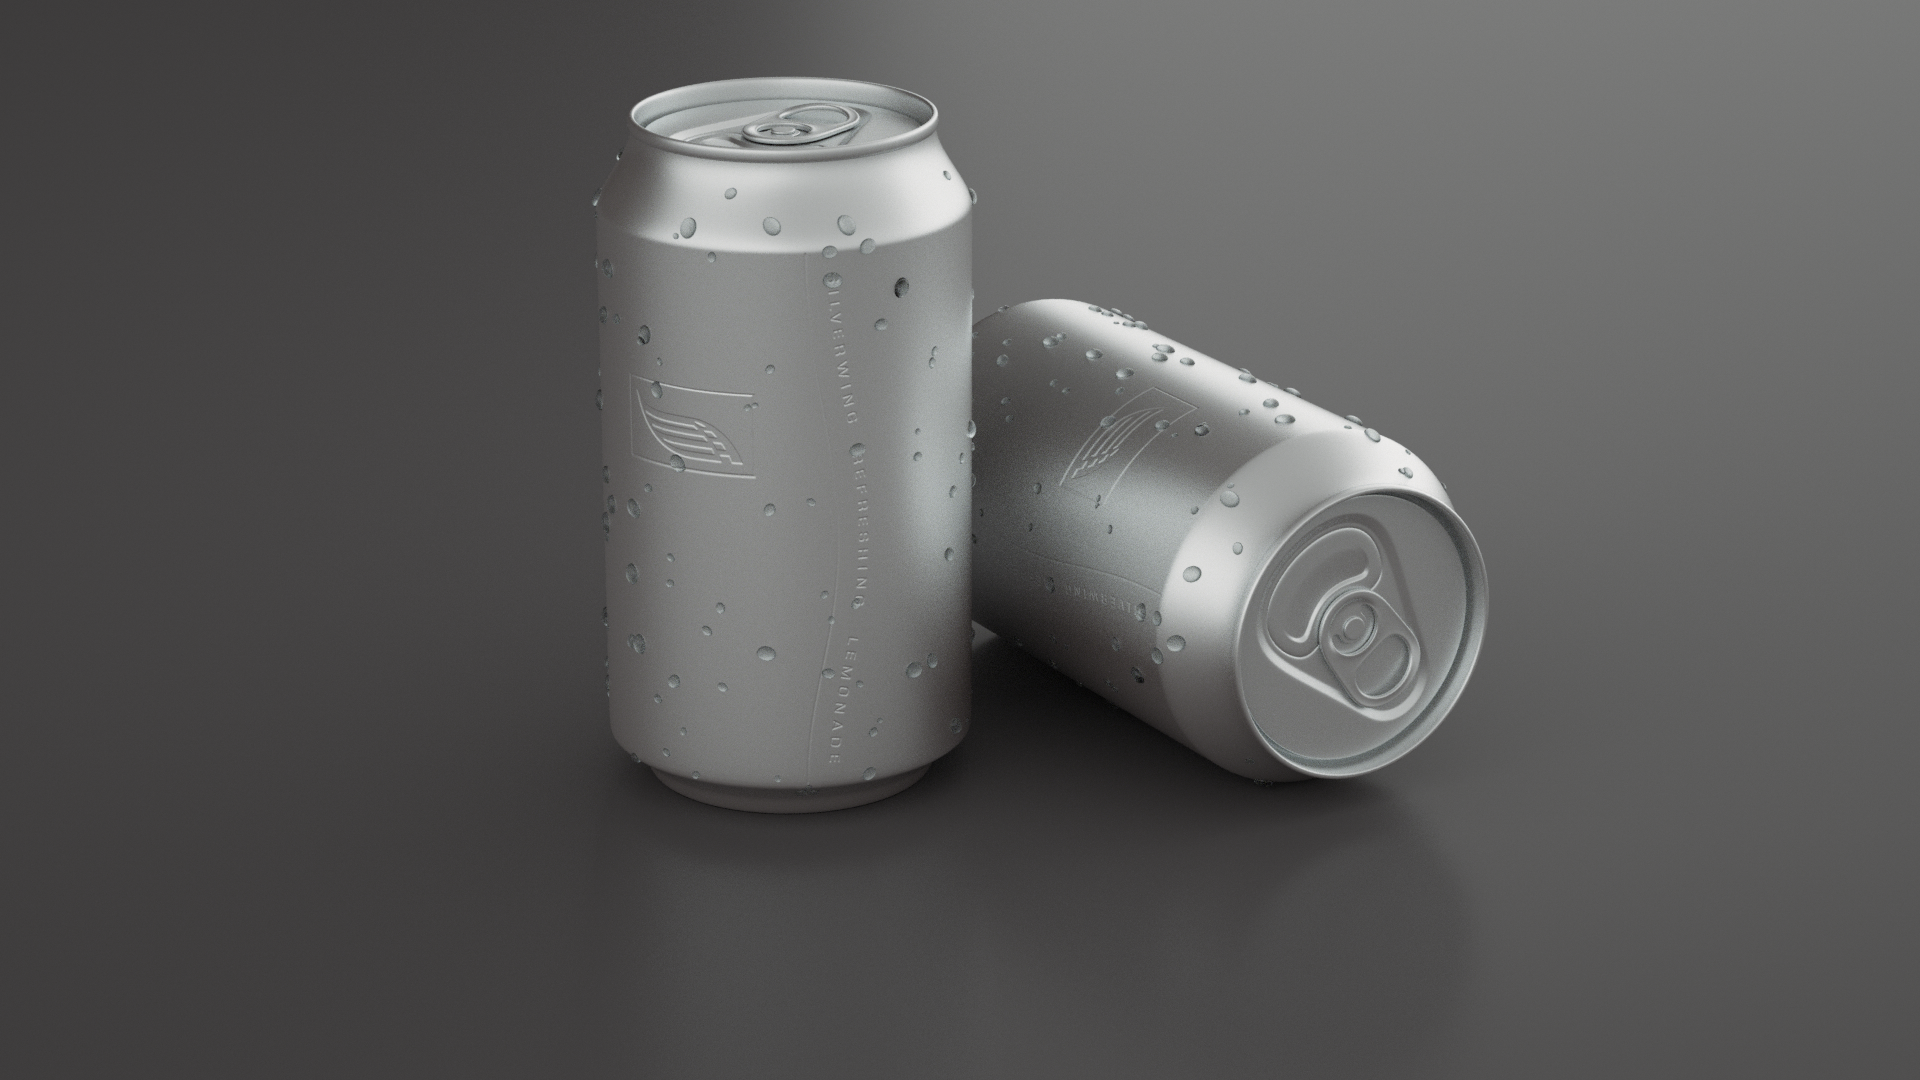 Lemonade can (Texturing, Octane Render, model courtesy of Raphael Rau)